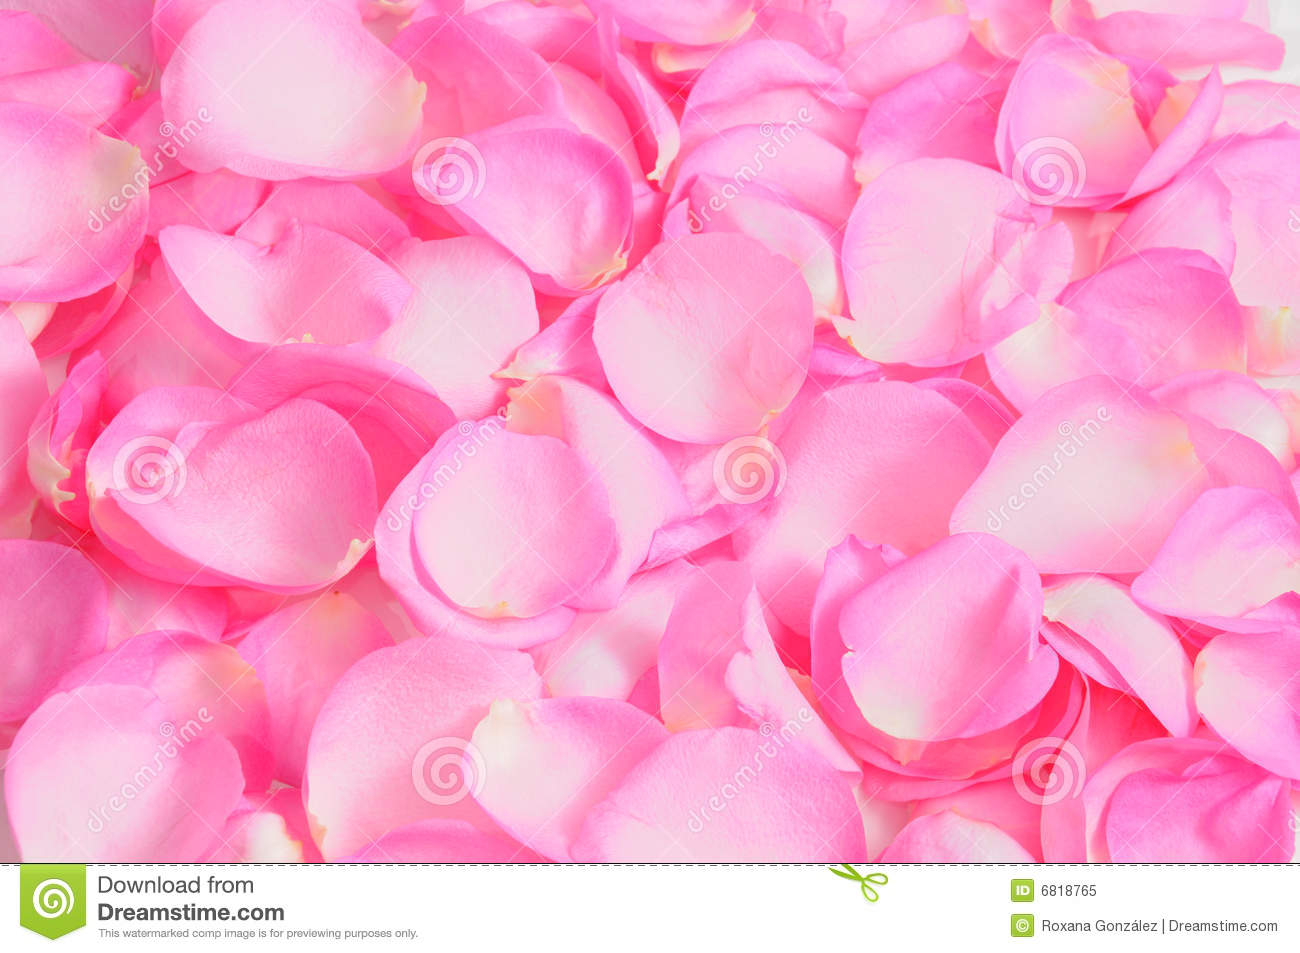 Falling Rose Petals Wallpaper Rose Petals Background Stock Image Image Of Texture